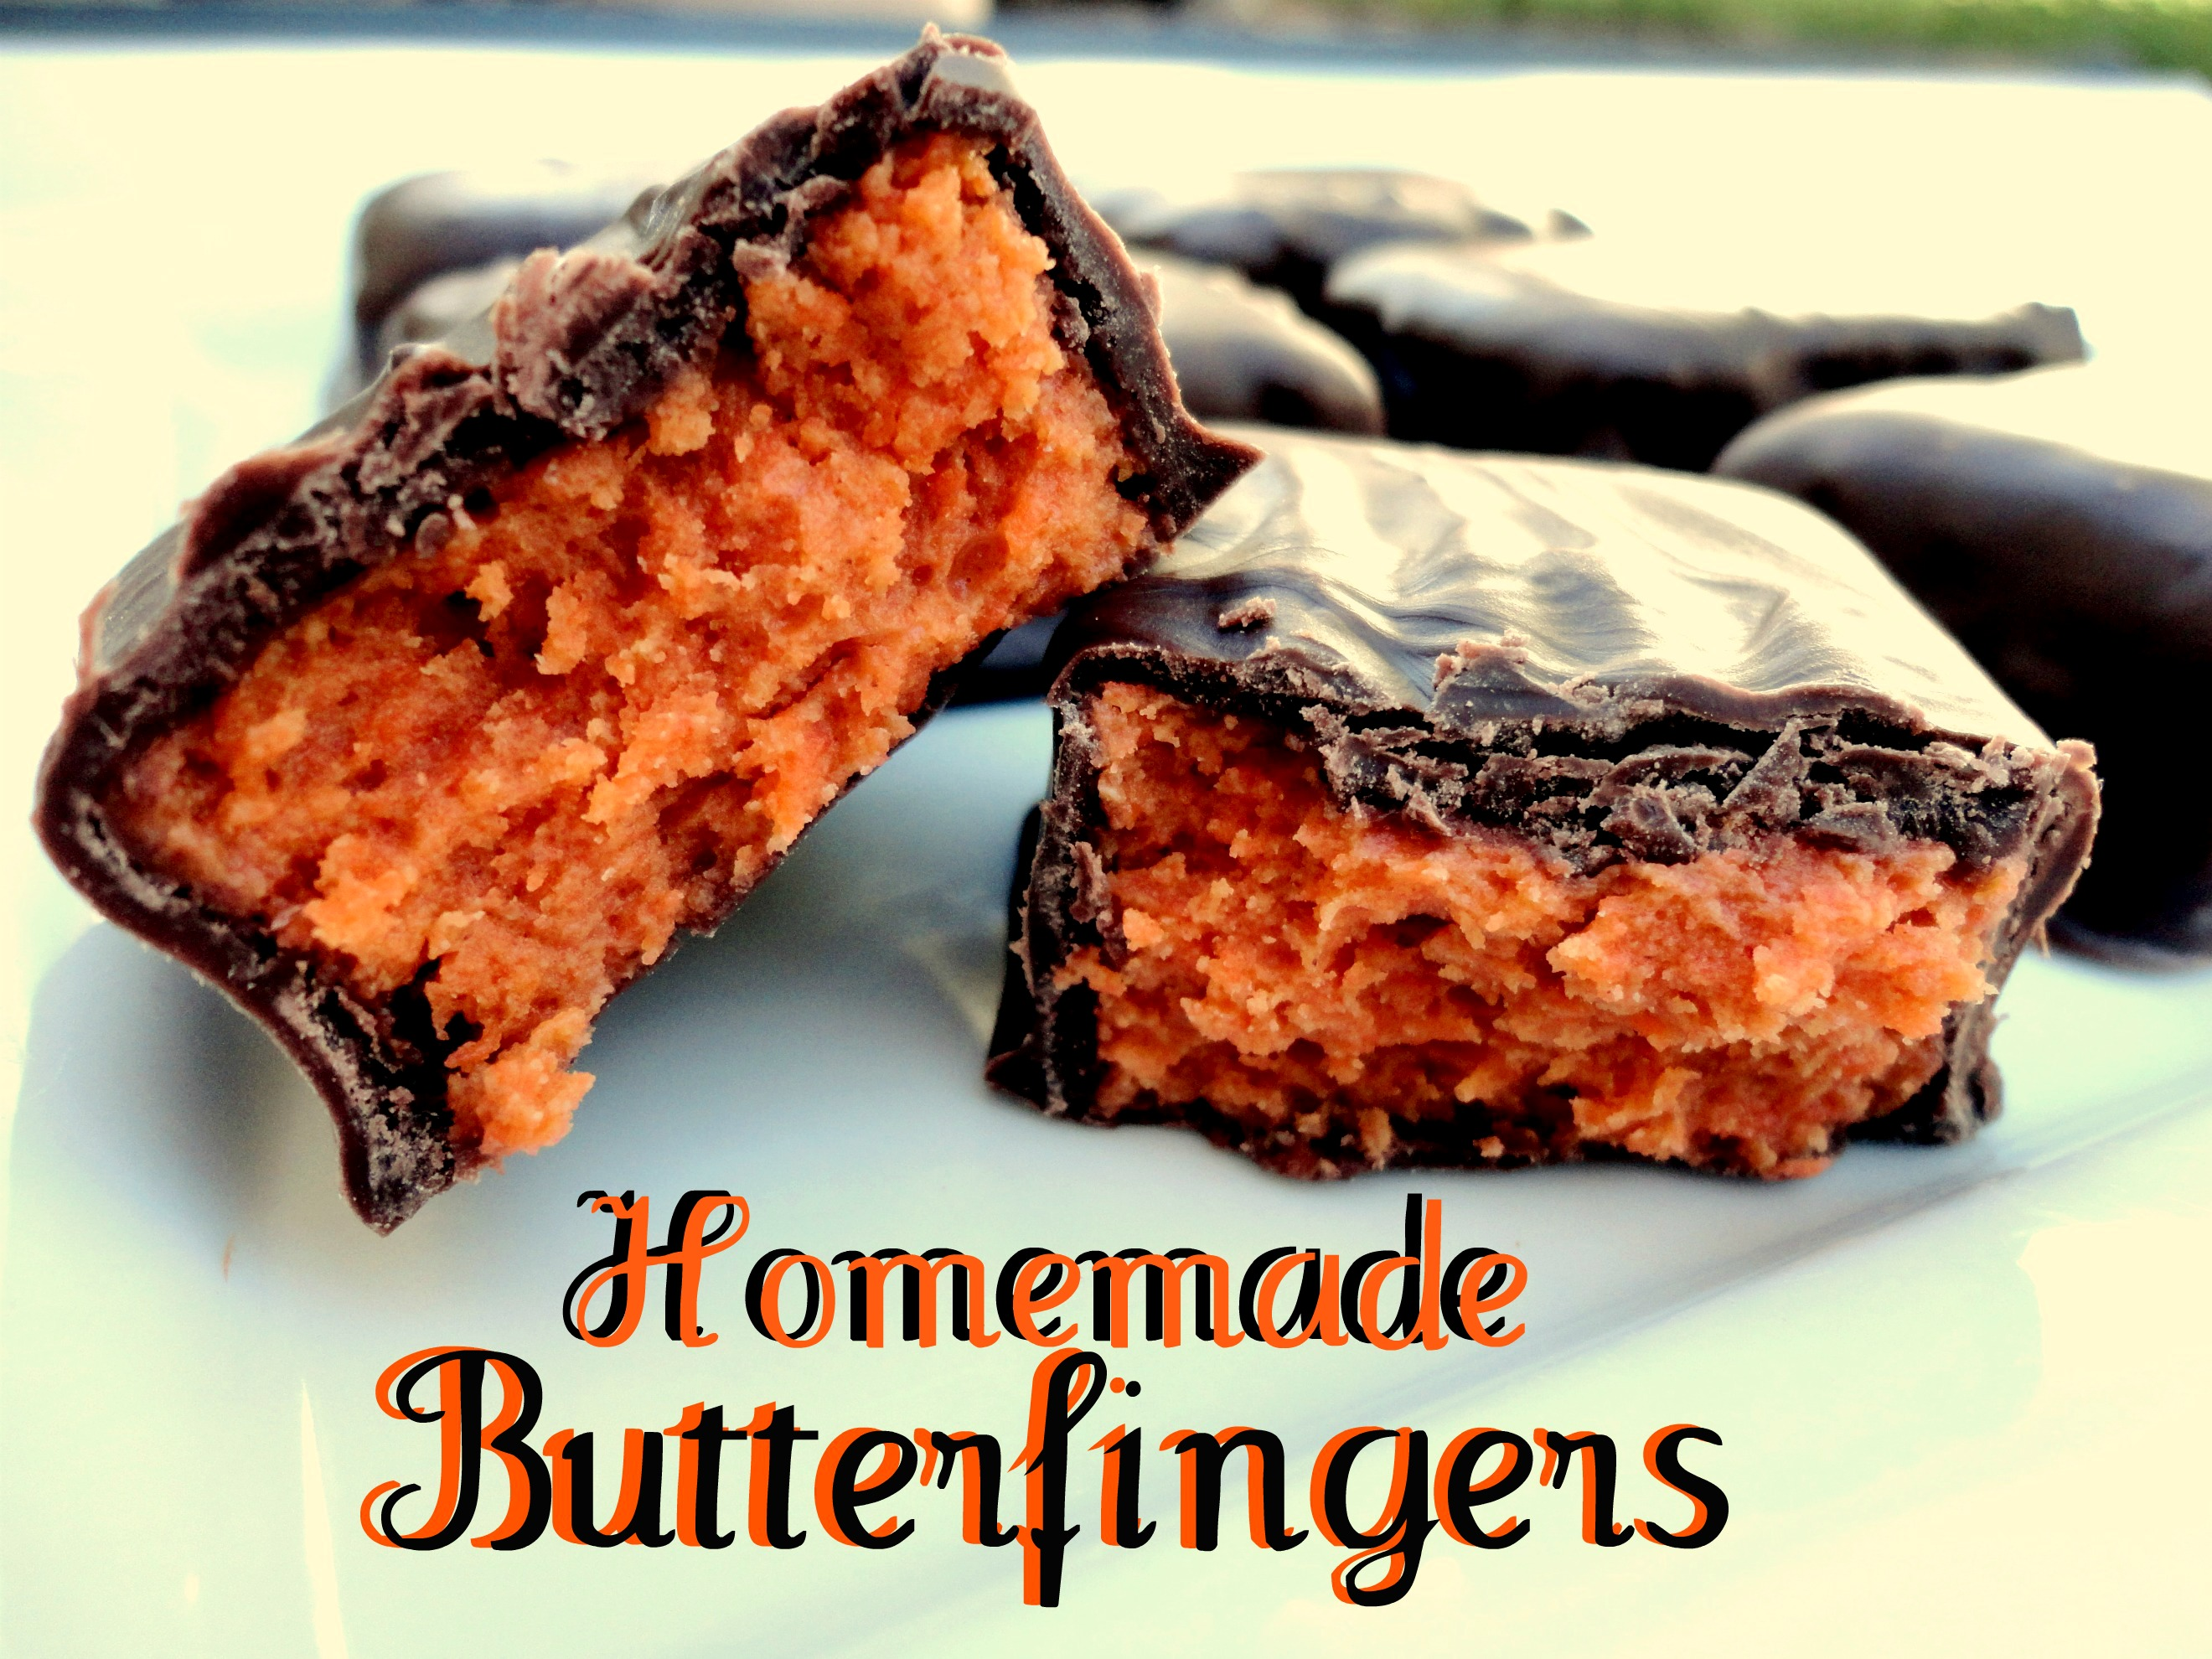 ... 14, 2011 at 2640 × 1980 in Homemade Butterfingers & Butterfinger Pops